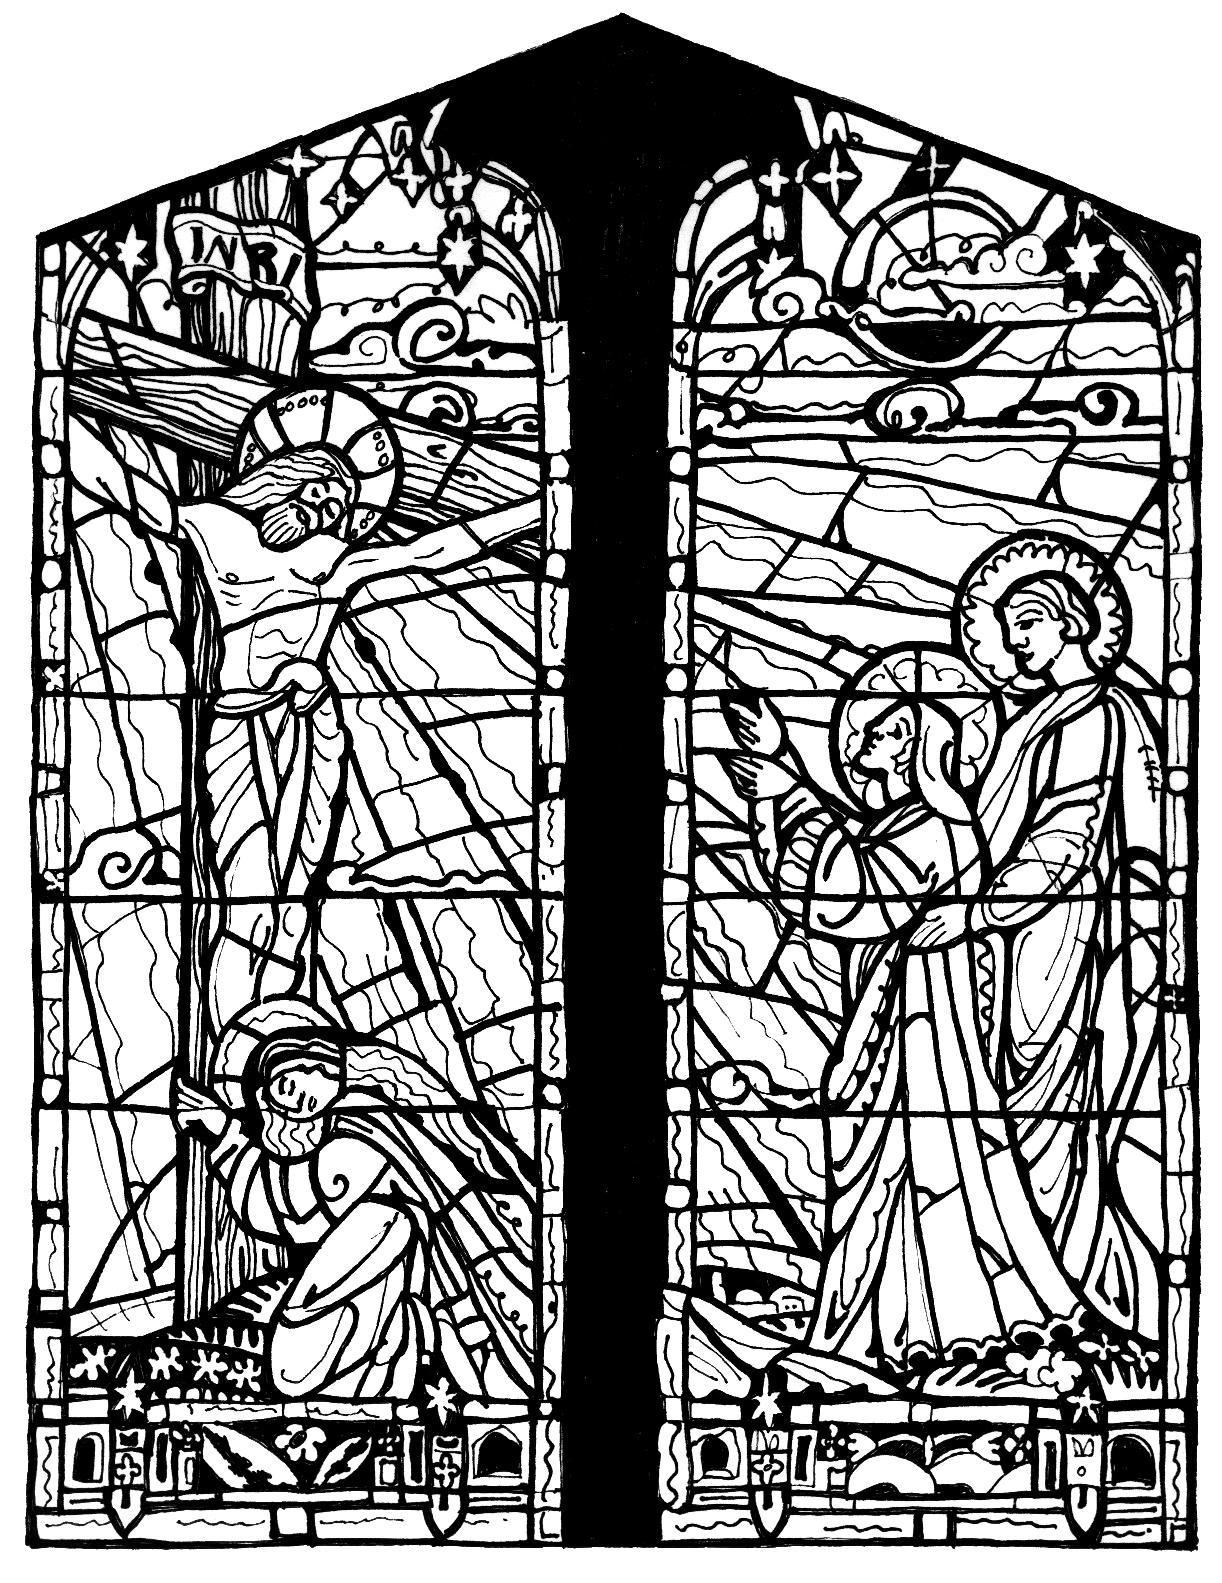 Adult Cute Free Stained Glass Coloring Pages Gallery Images top stained glass coloring pages printable free medieval images